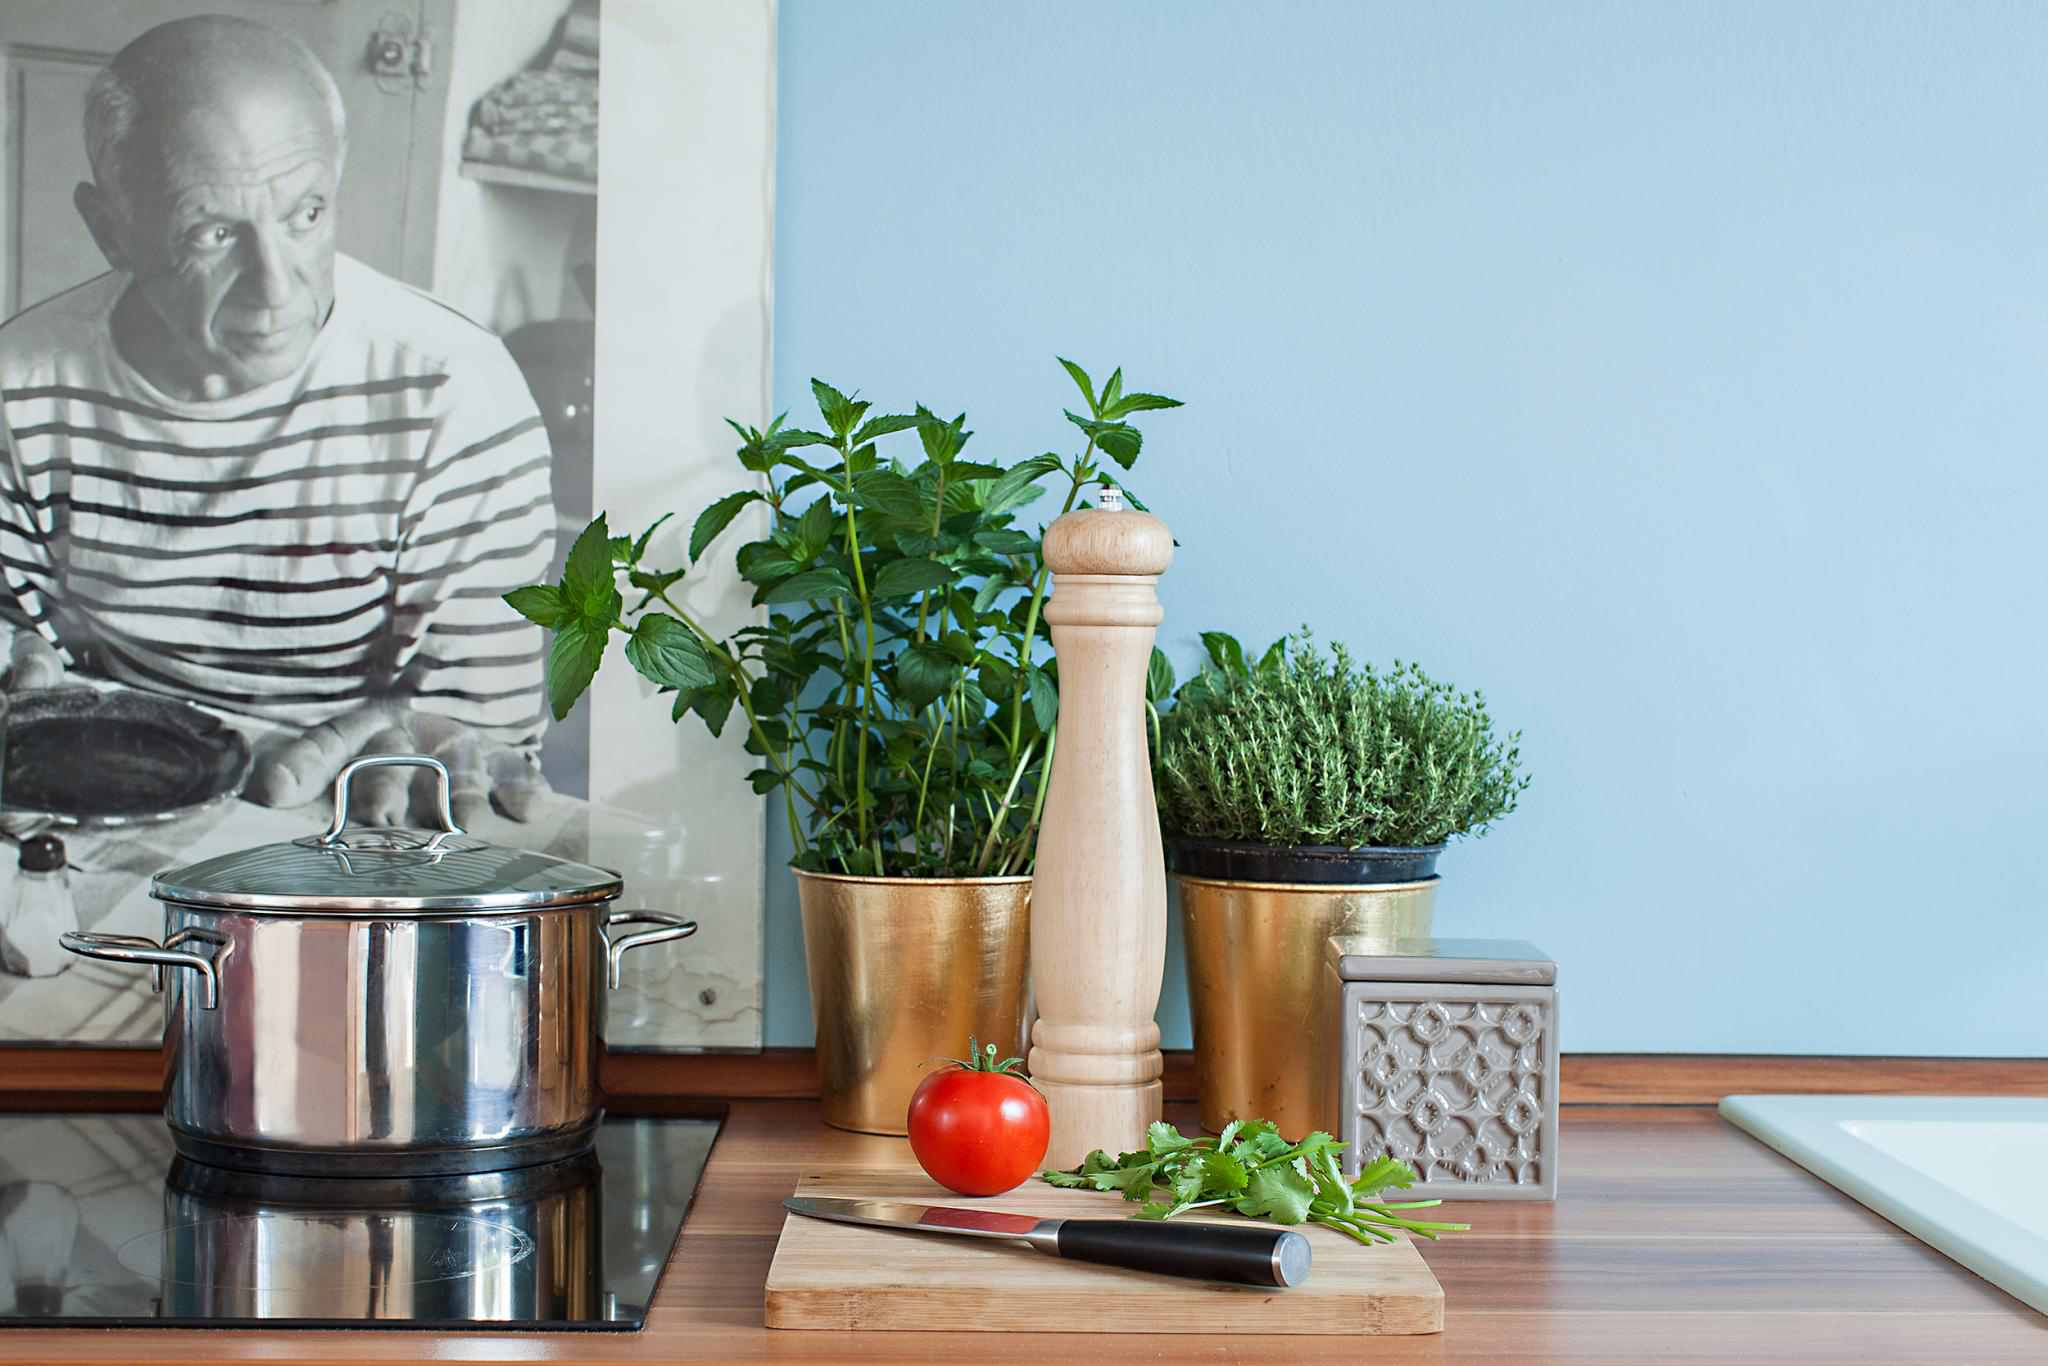 greenery and fresh herbs in kitchen